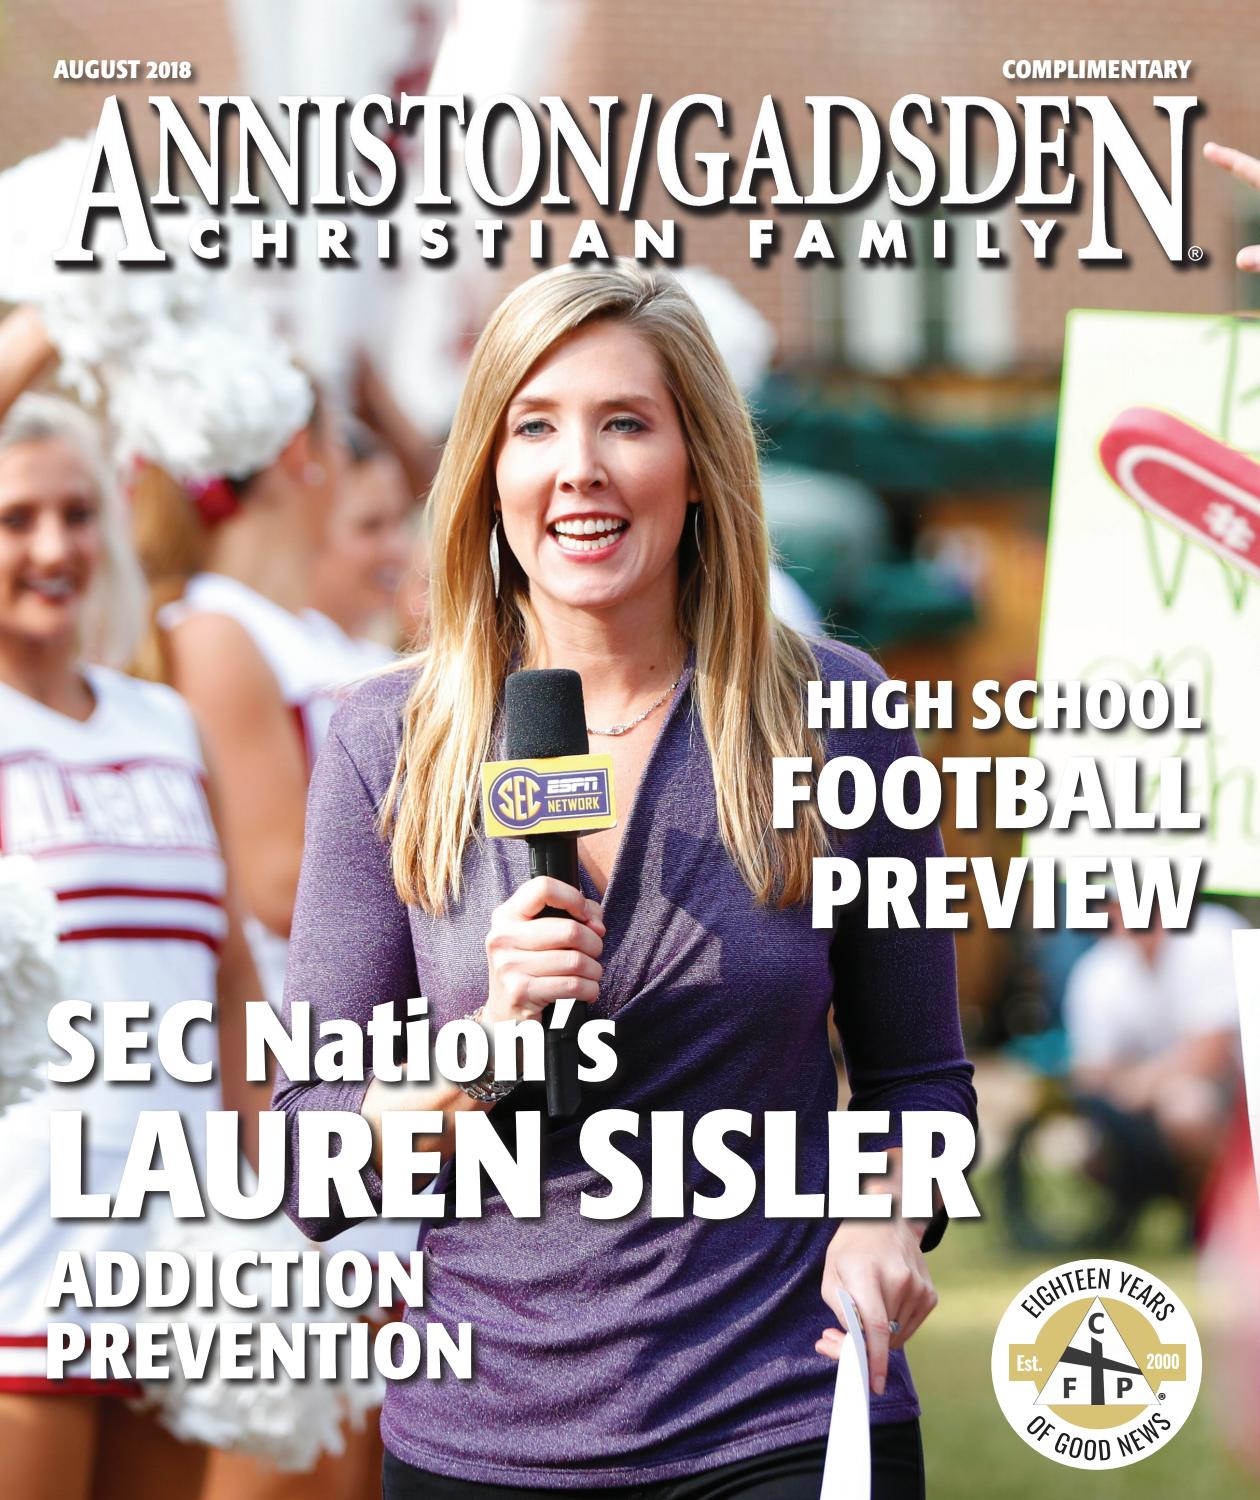 Anniston Gadsden Christian Family - August 2018 by